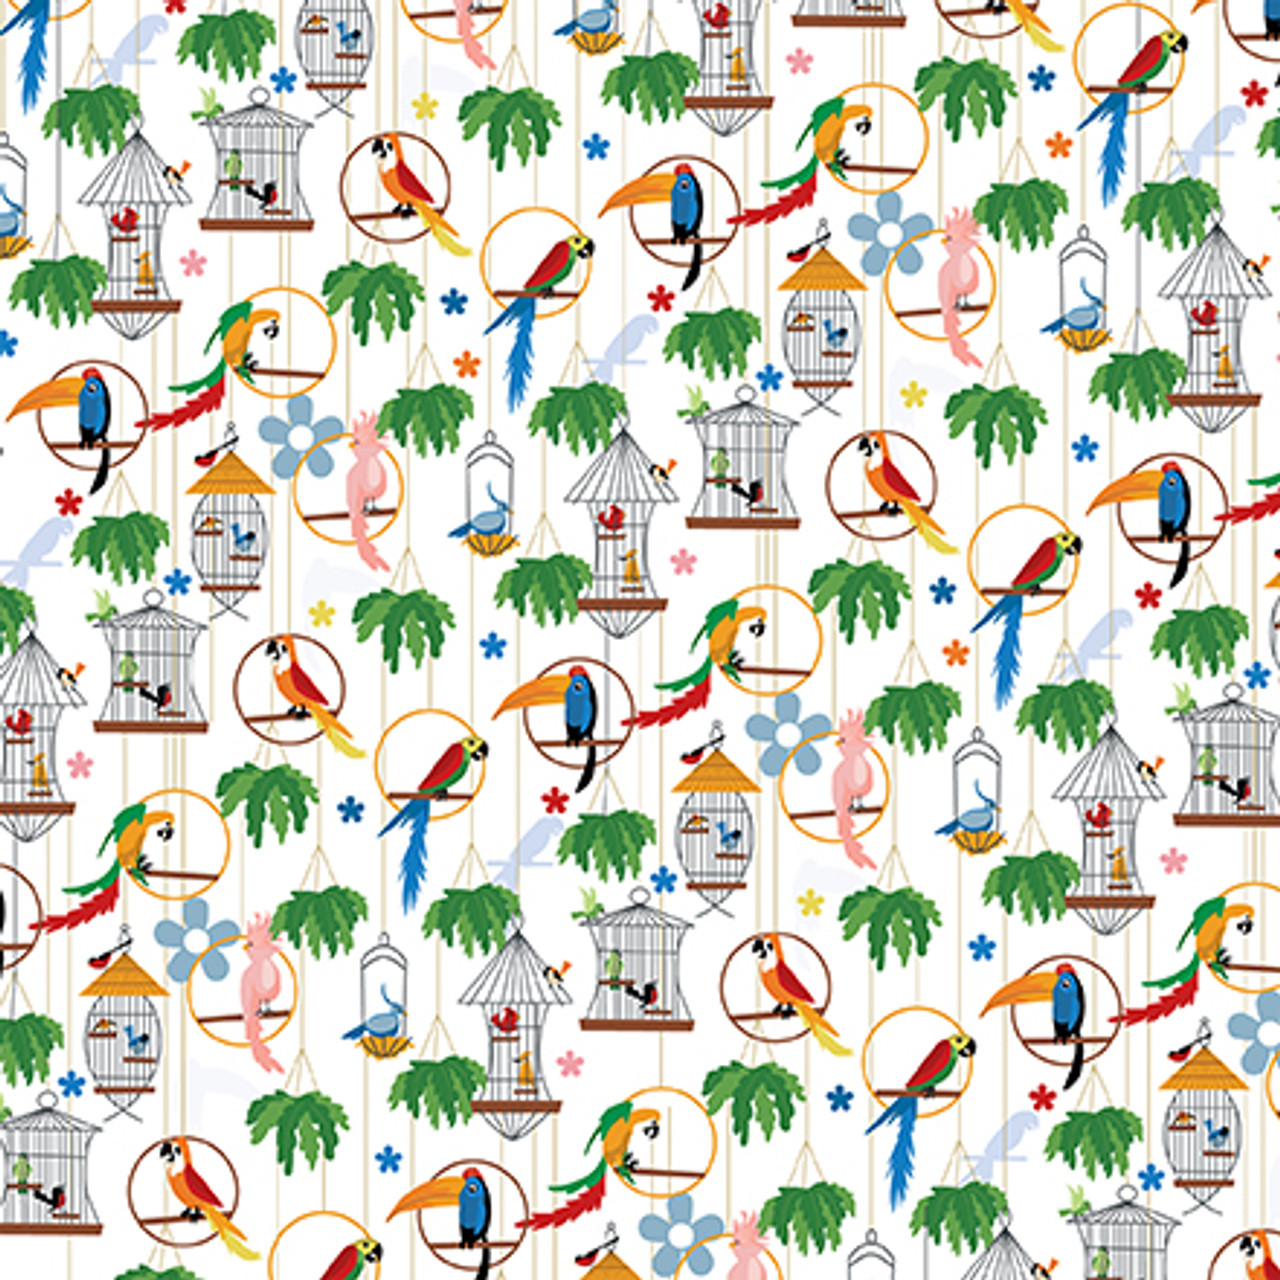 Zoo Adventure Collection Aviary 12 x 12 Double-Sided Scrapbook Paper by Carta Bella